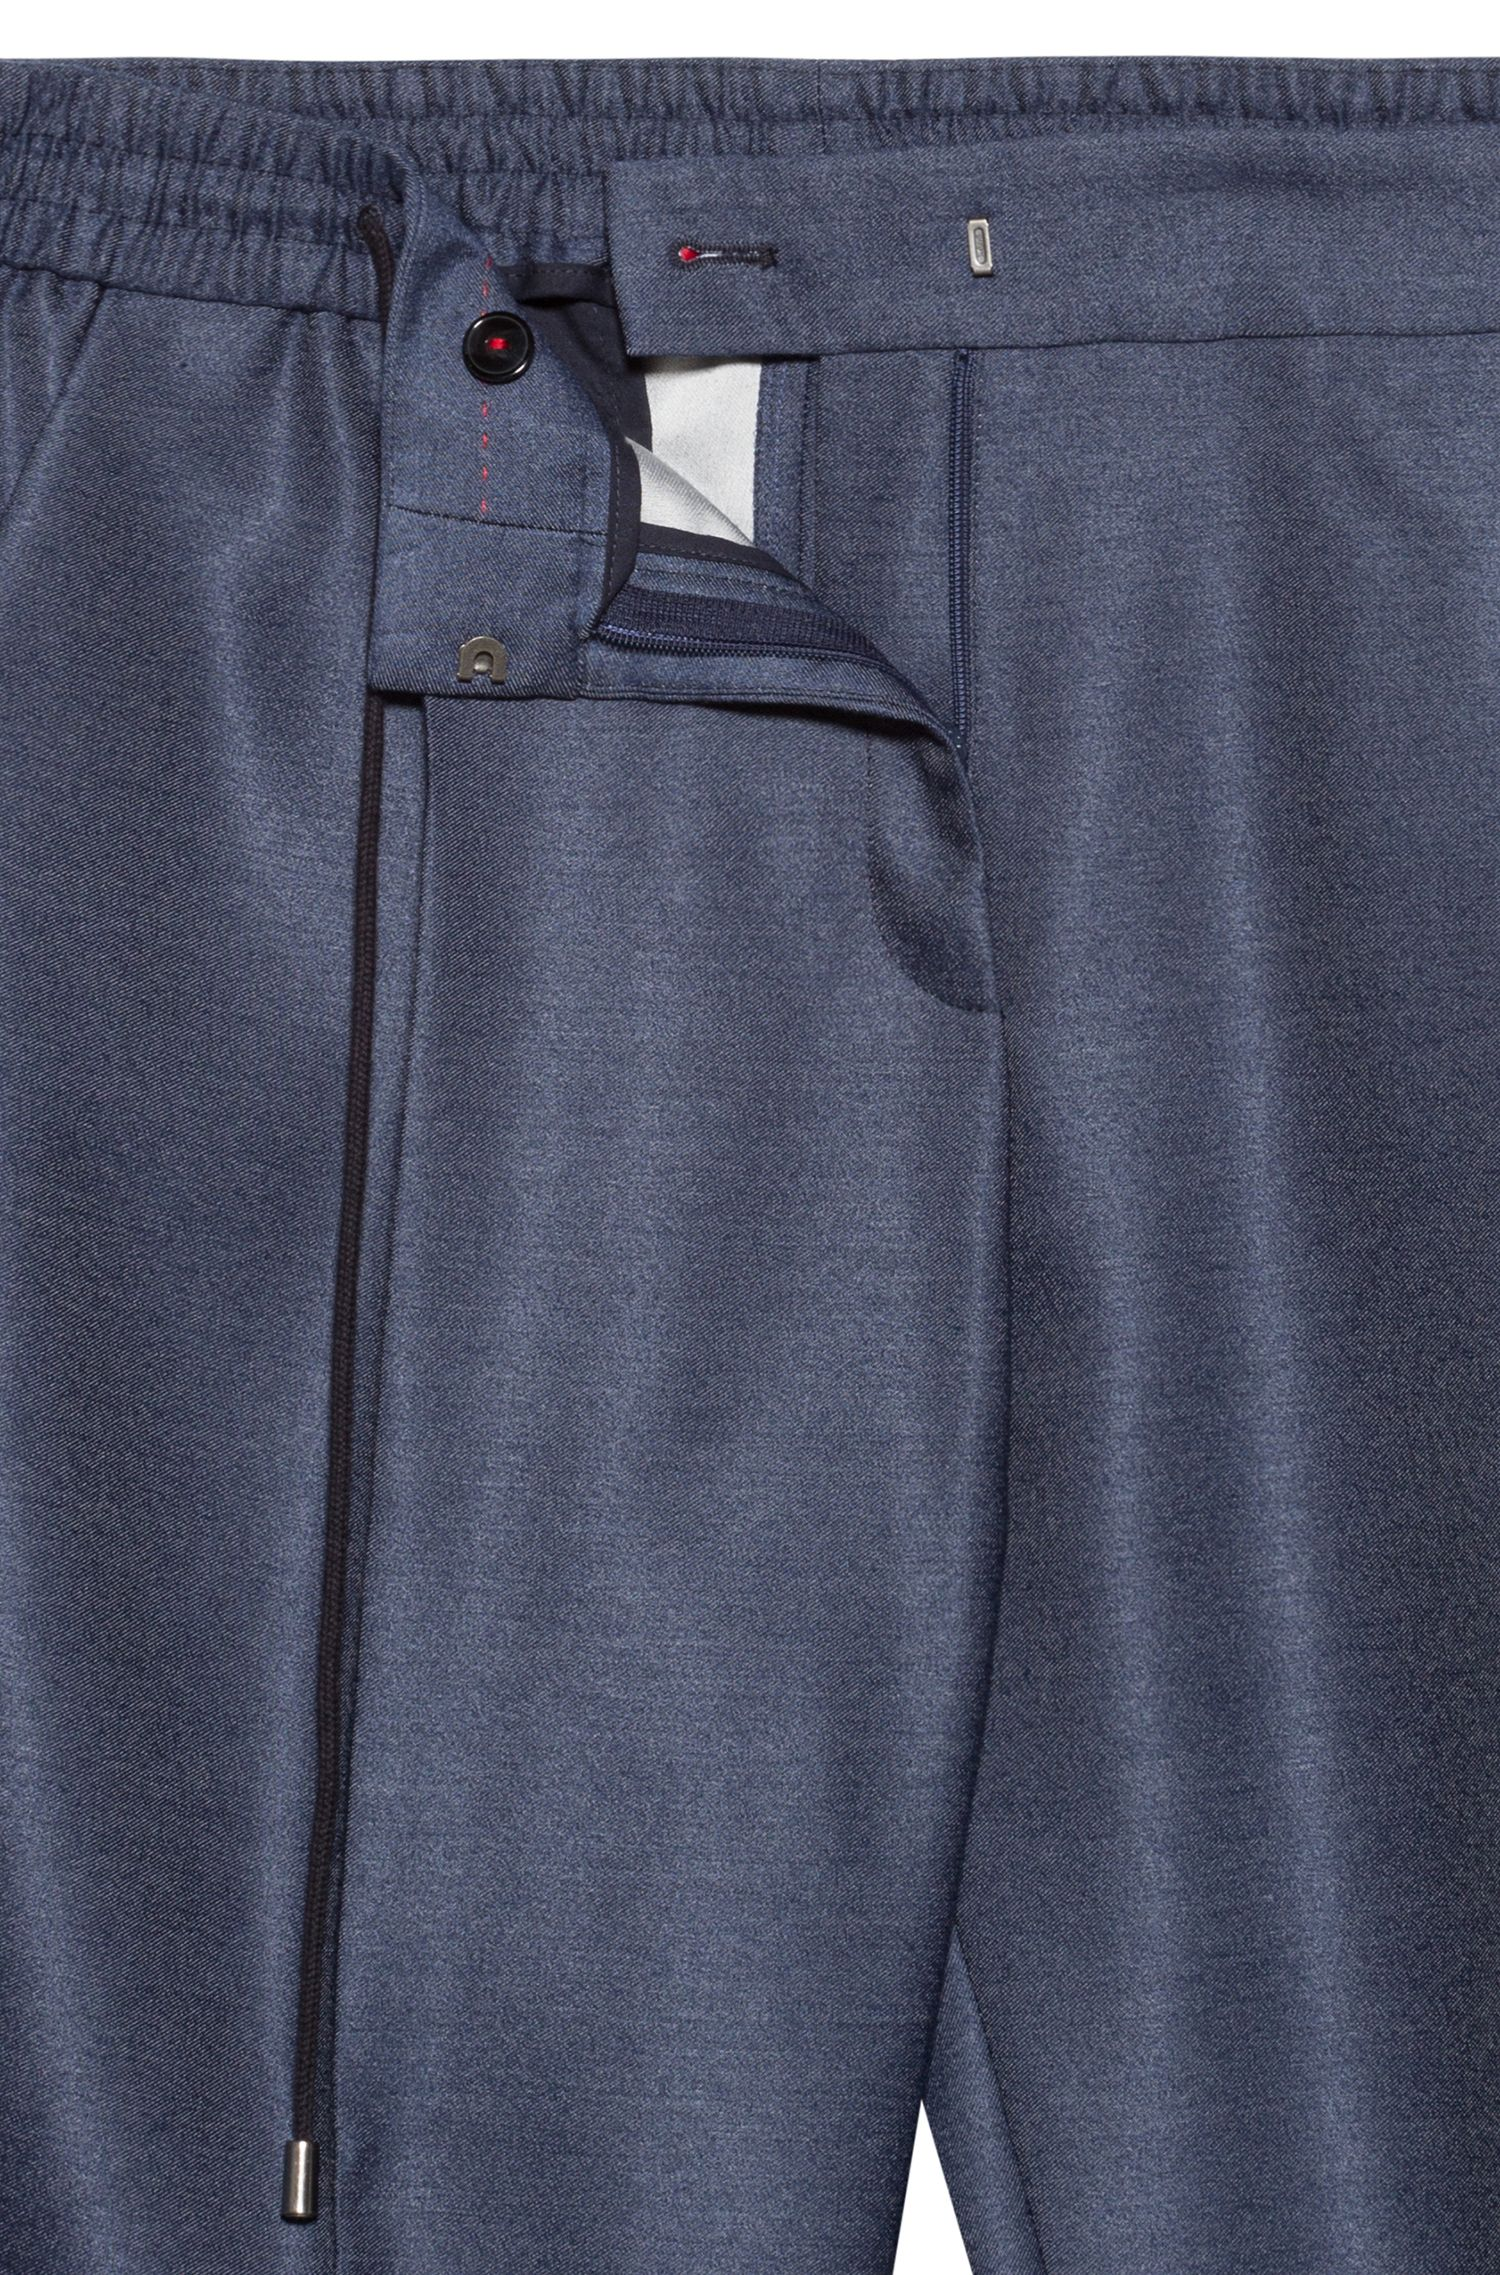 Hugo Boss - Relaxed-fit trousers in stretch fabric with drawstring waist - 5